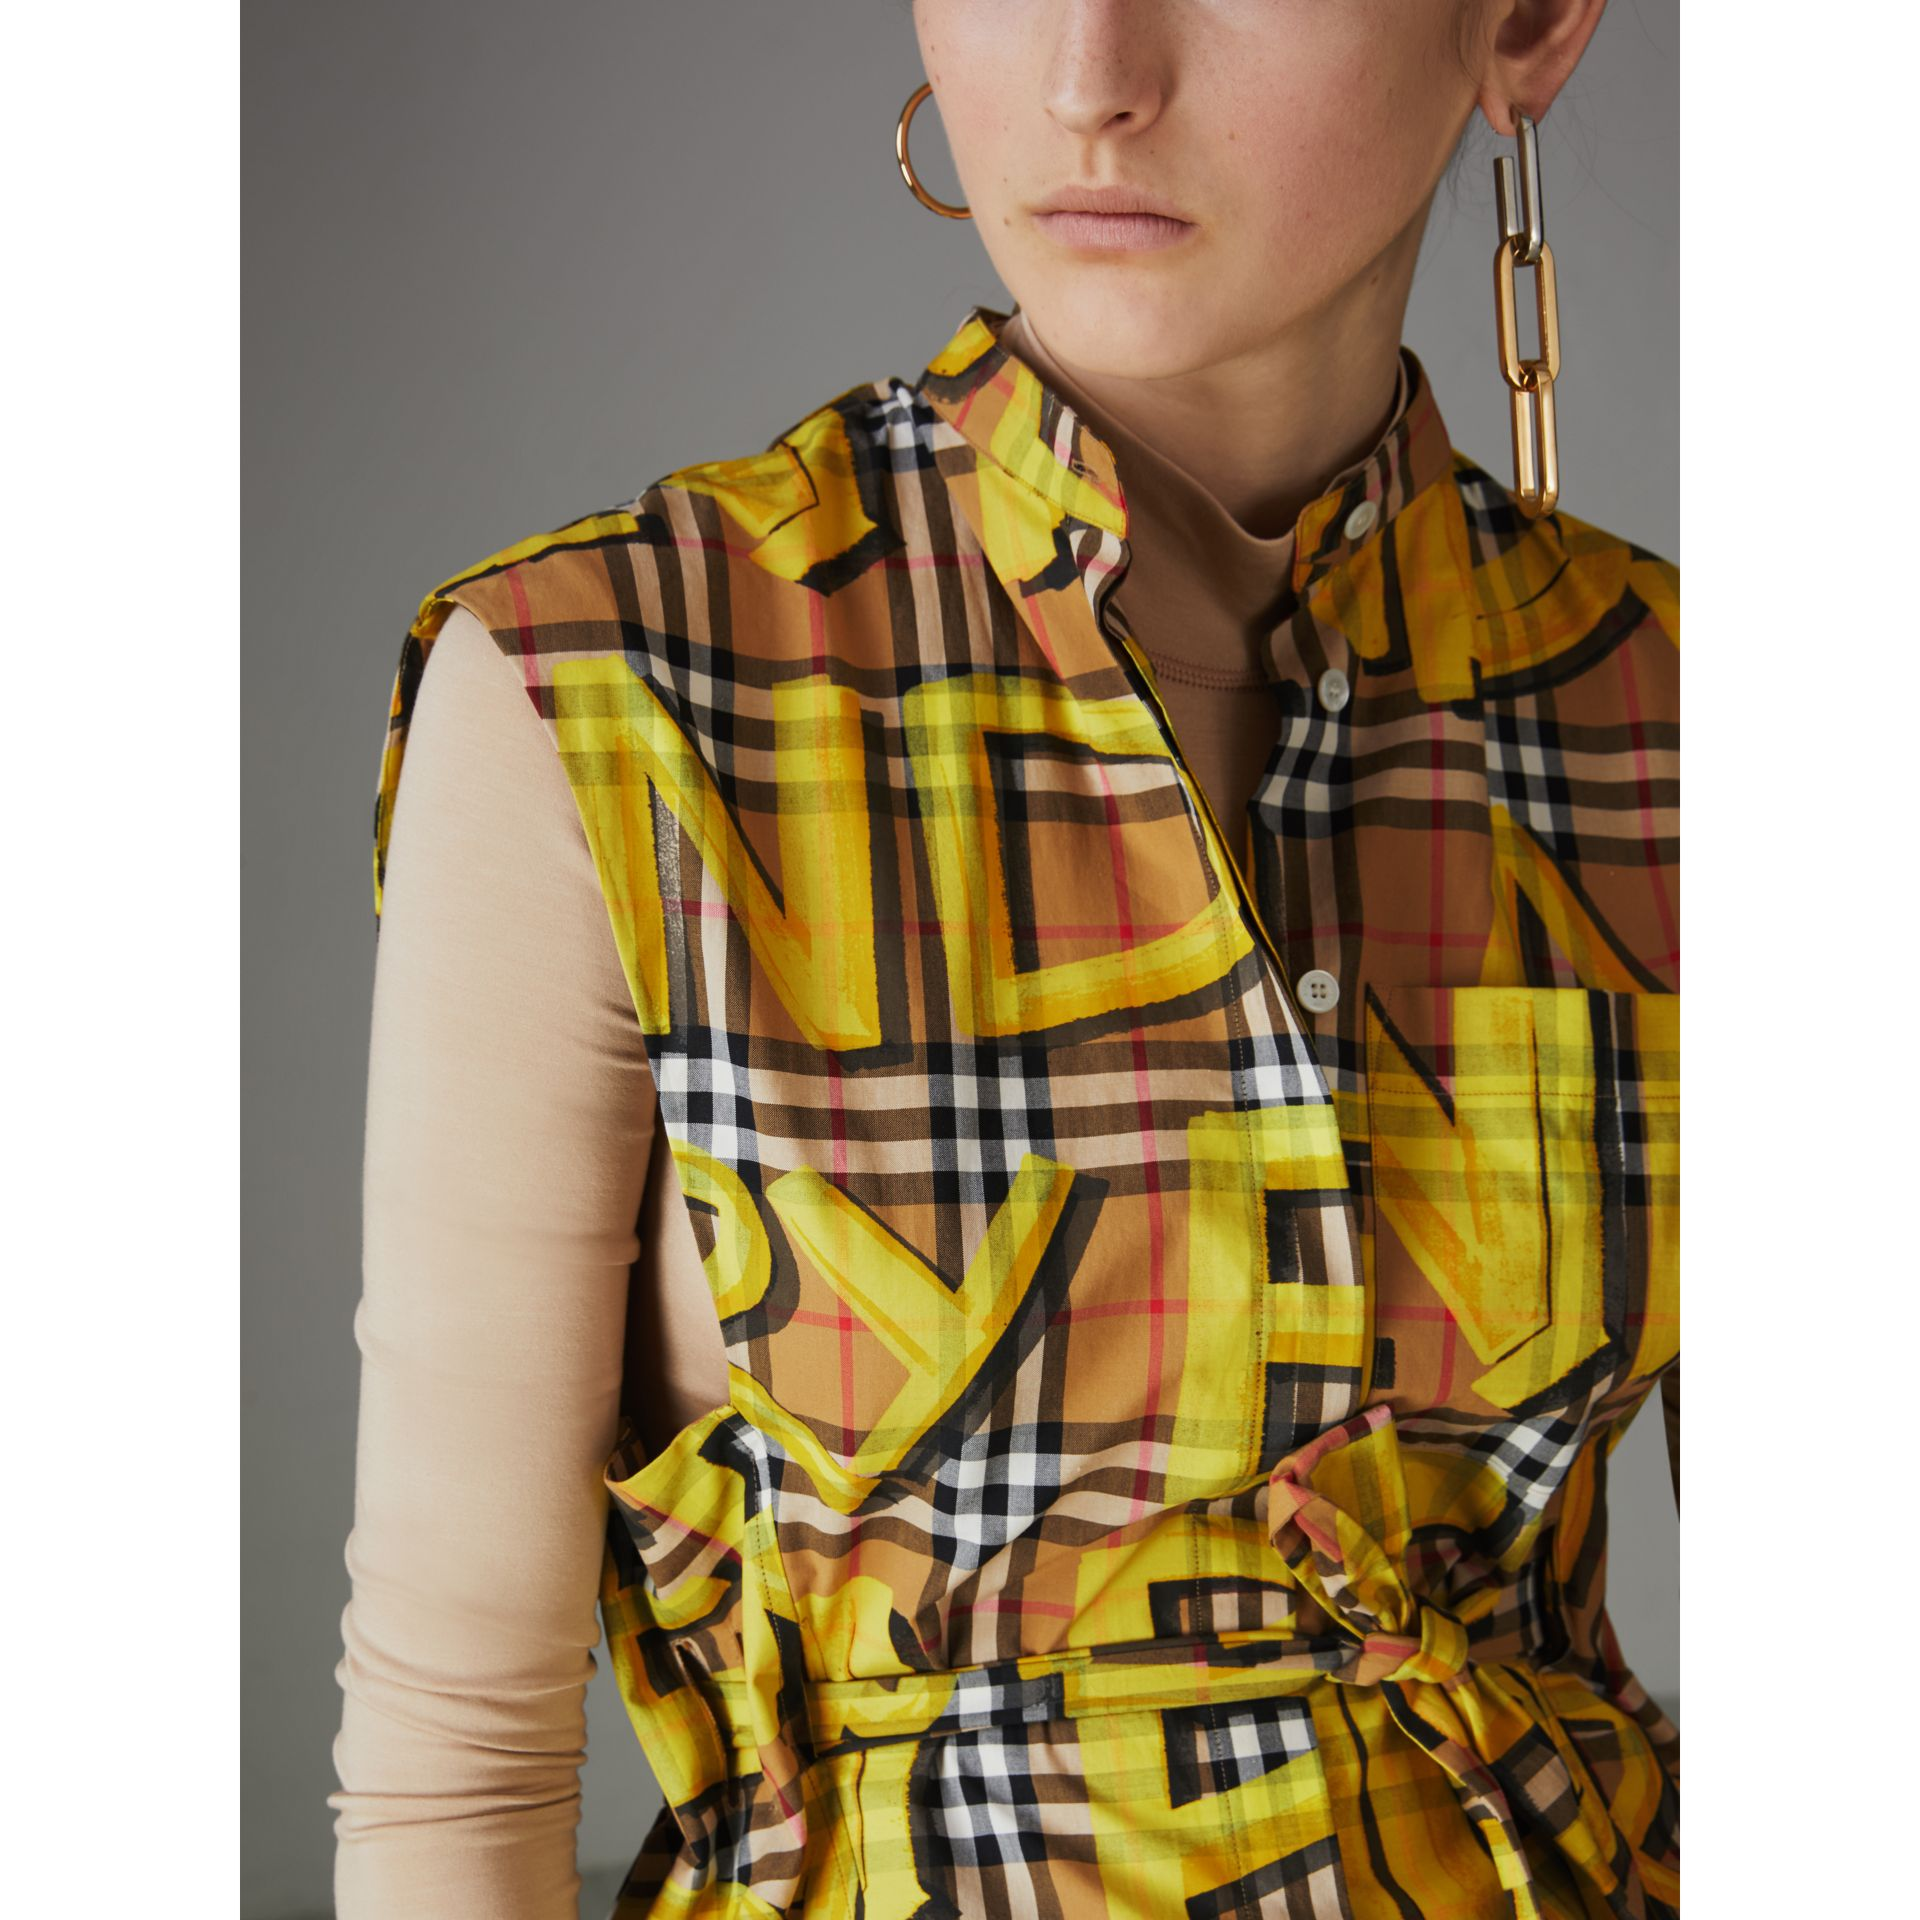 Sleeveless Graffiti Print Vintage Check Cotton Shirt in Bright Yellow - Women | Burberry Singapore - gallery image 1